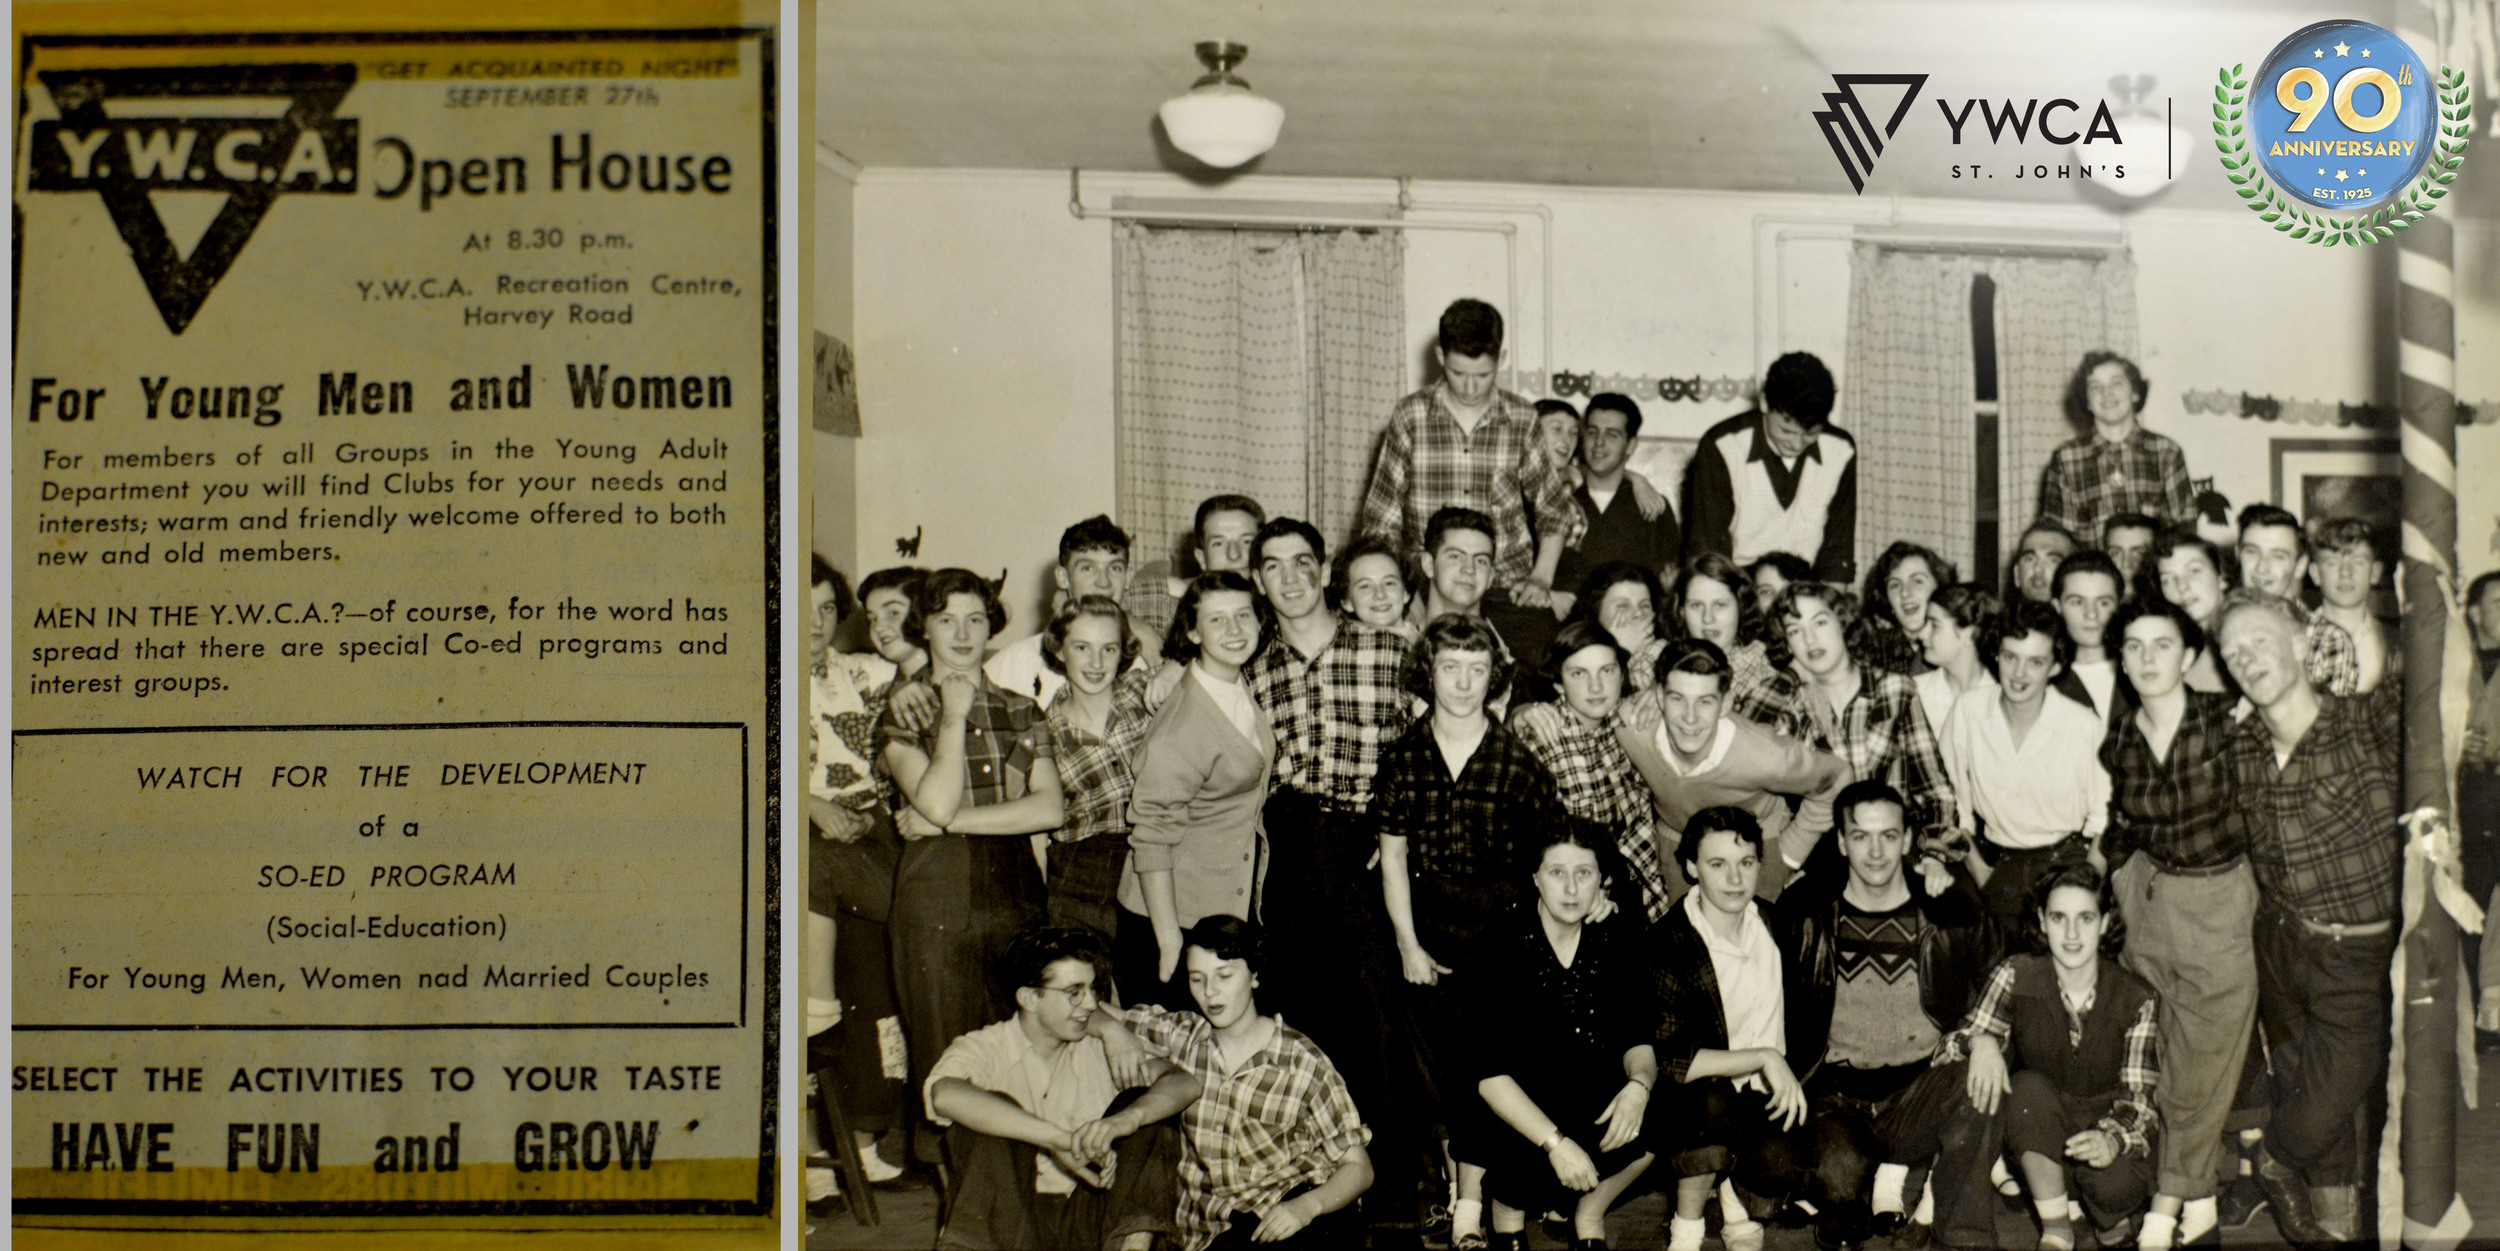 1960-1 Plaid Day - Fun and Growth.jpg